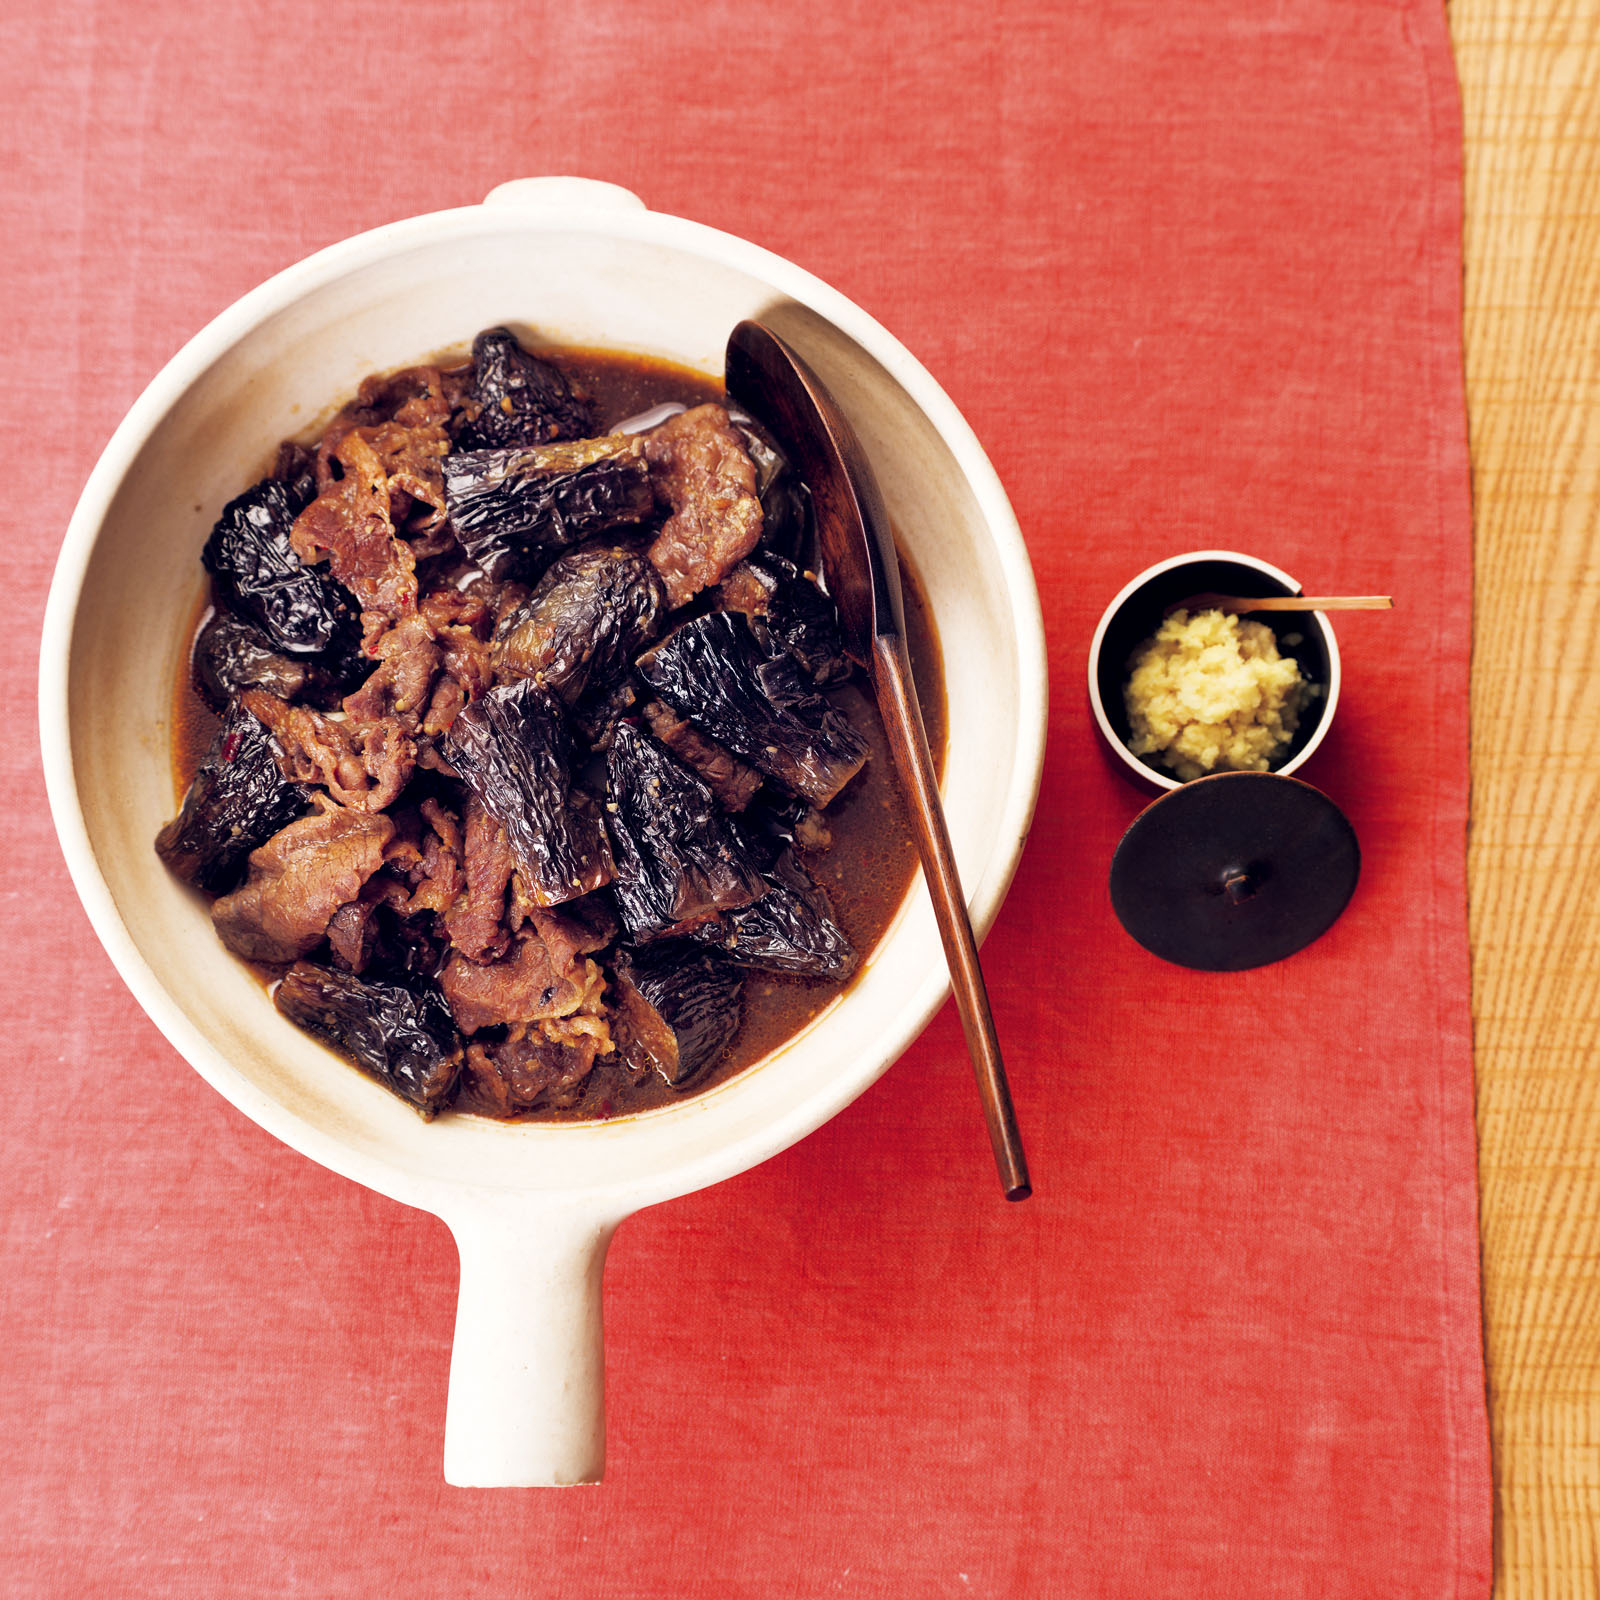 Japanese Aubergine and Beef cooked in Miso